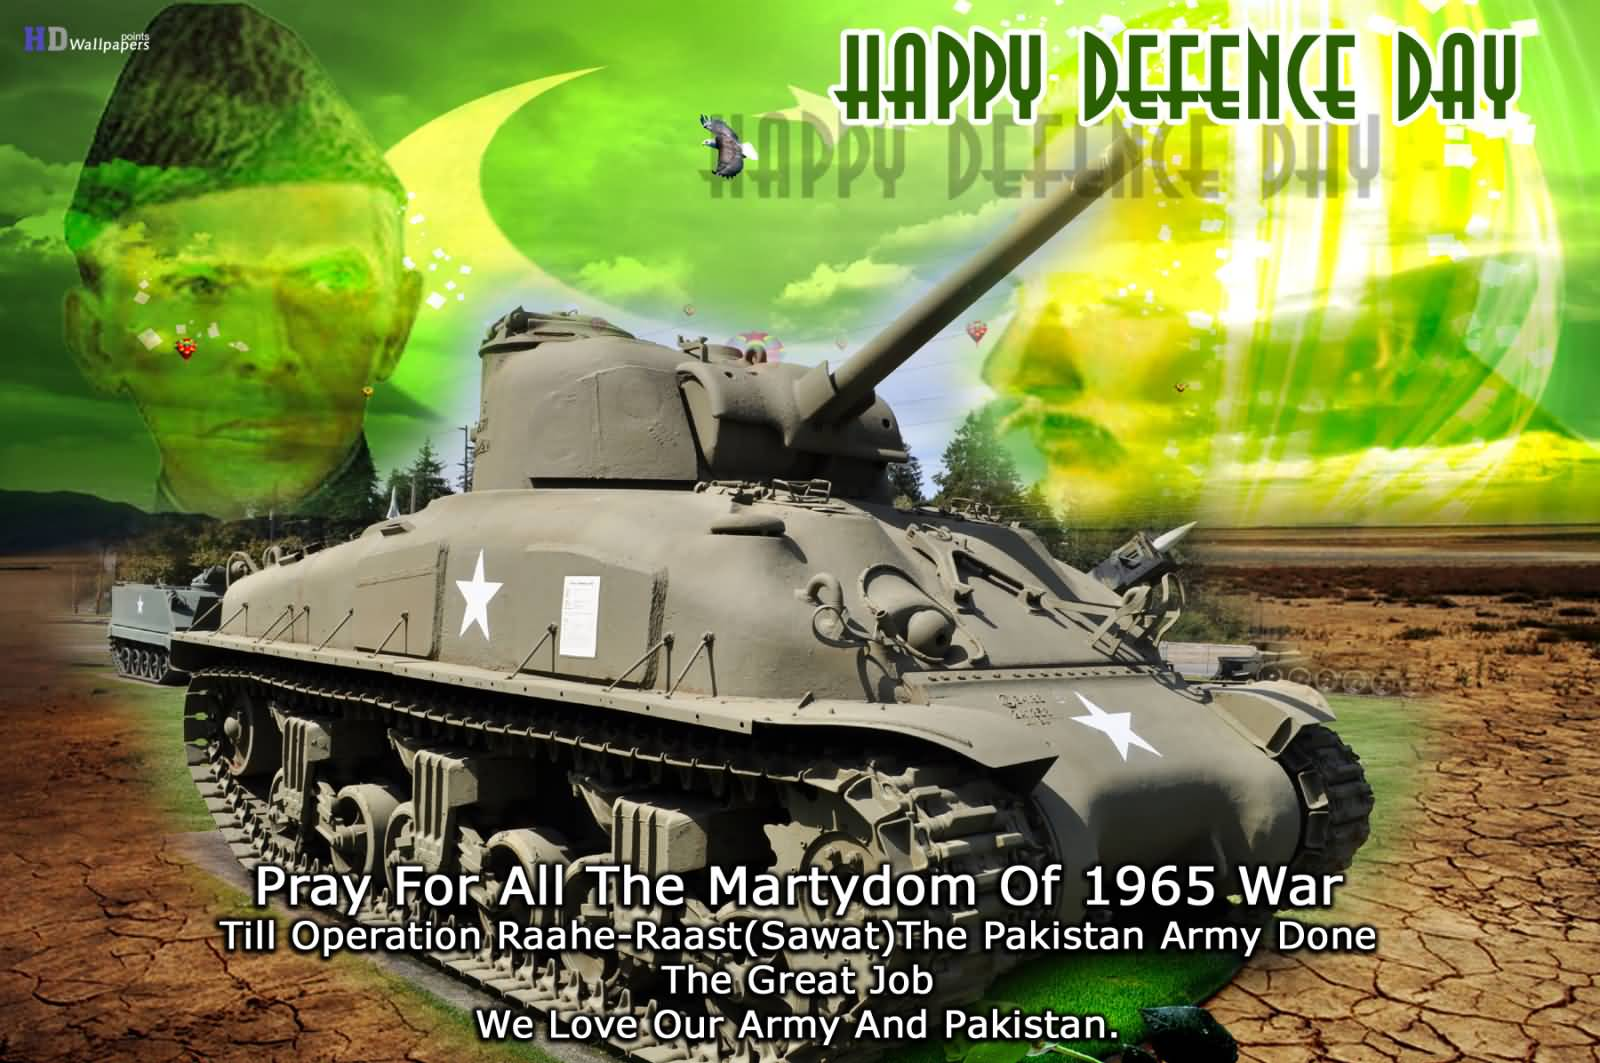 defence day essay 6th september the defence day sacrifices for the defence of the country and what is the responsibility of young generation now.